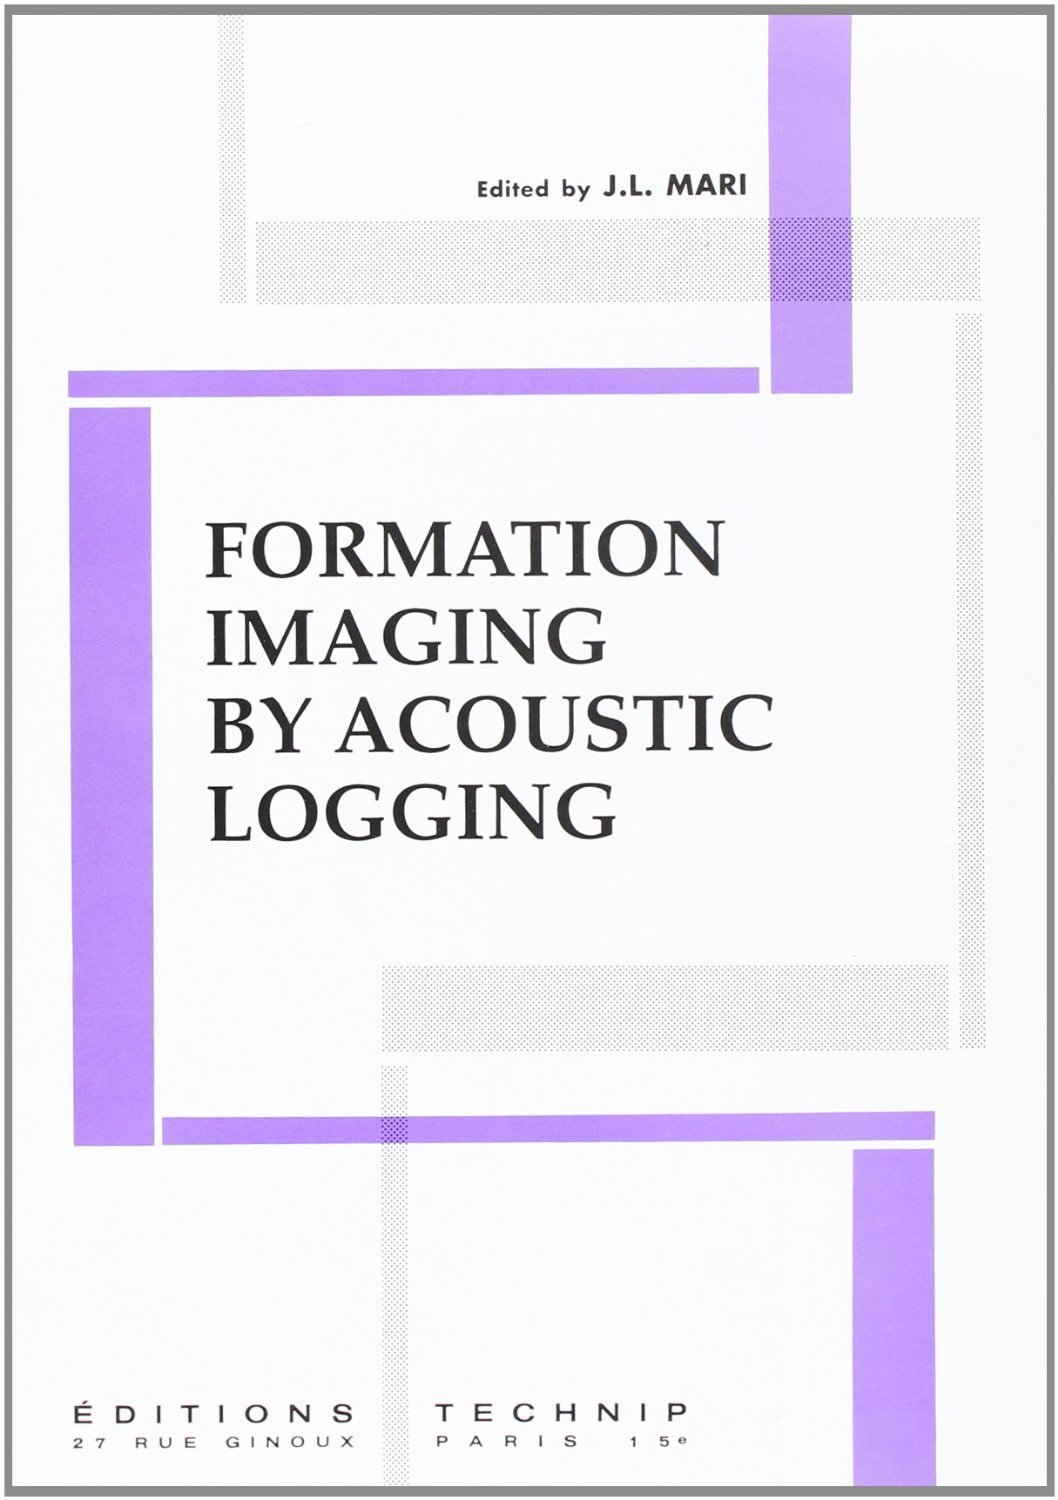 FORMATION BY ACOUSTIC LOGGING